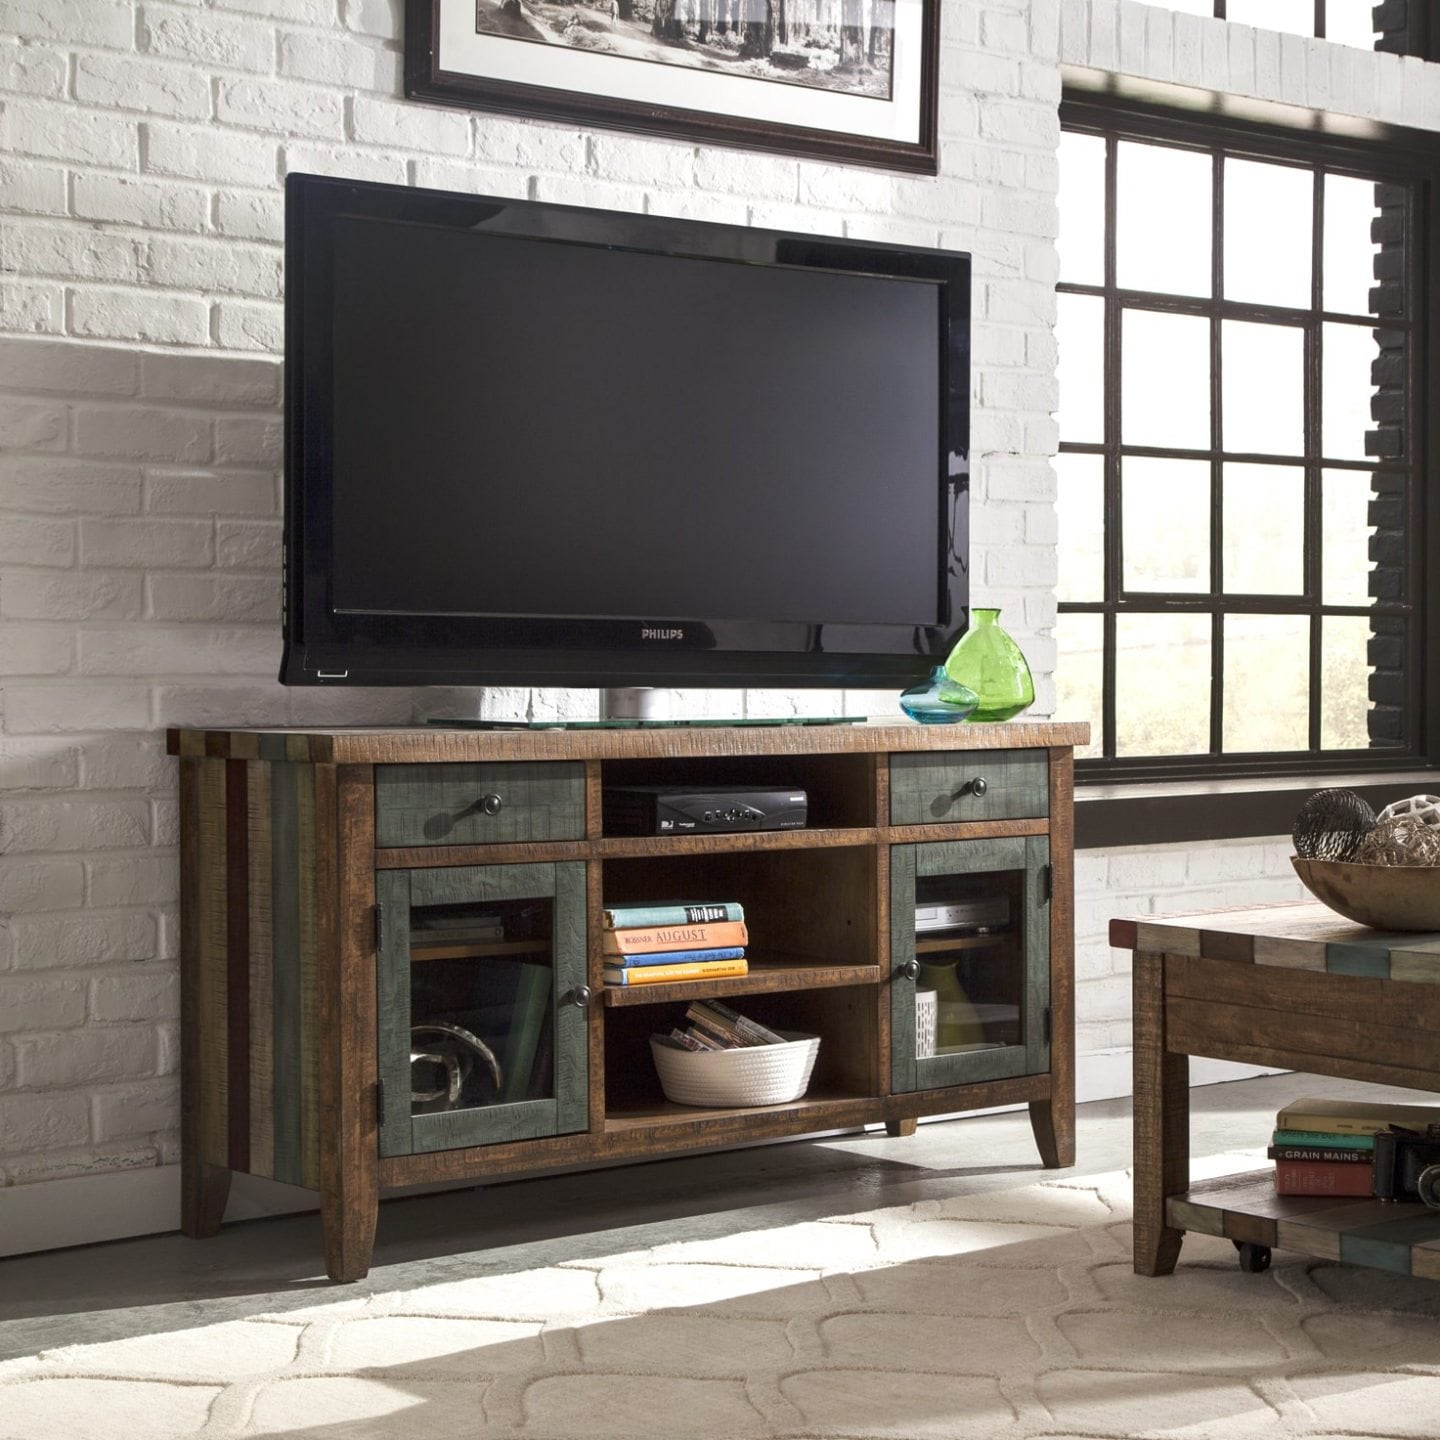 Pleasing 6 Tips For Buying A Great Tv Stand For Your Home Overstock Com Uwap Interior Chair Design Uwaporg